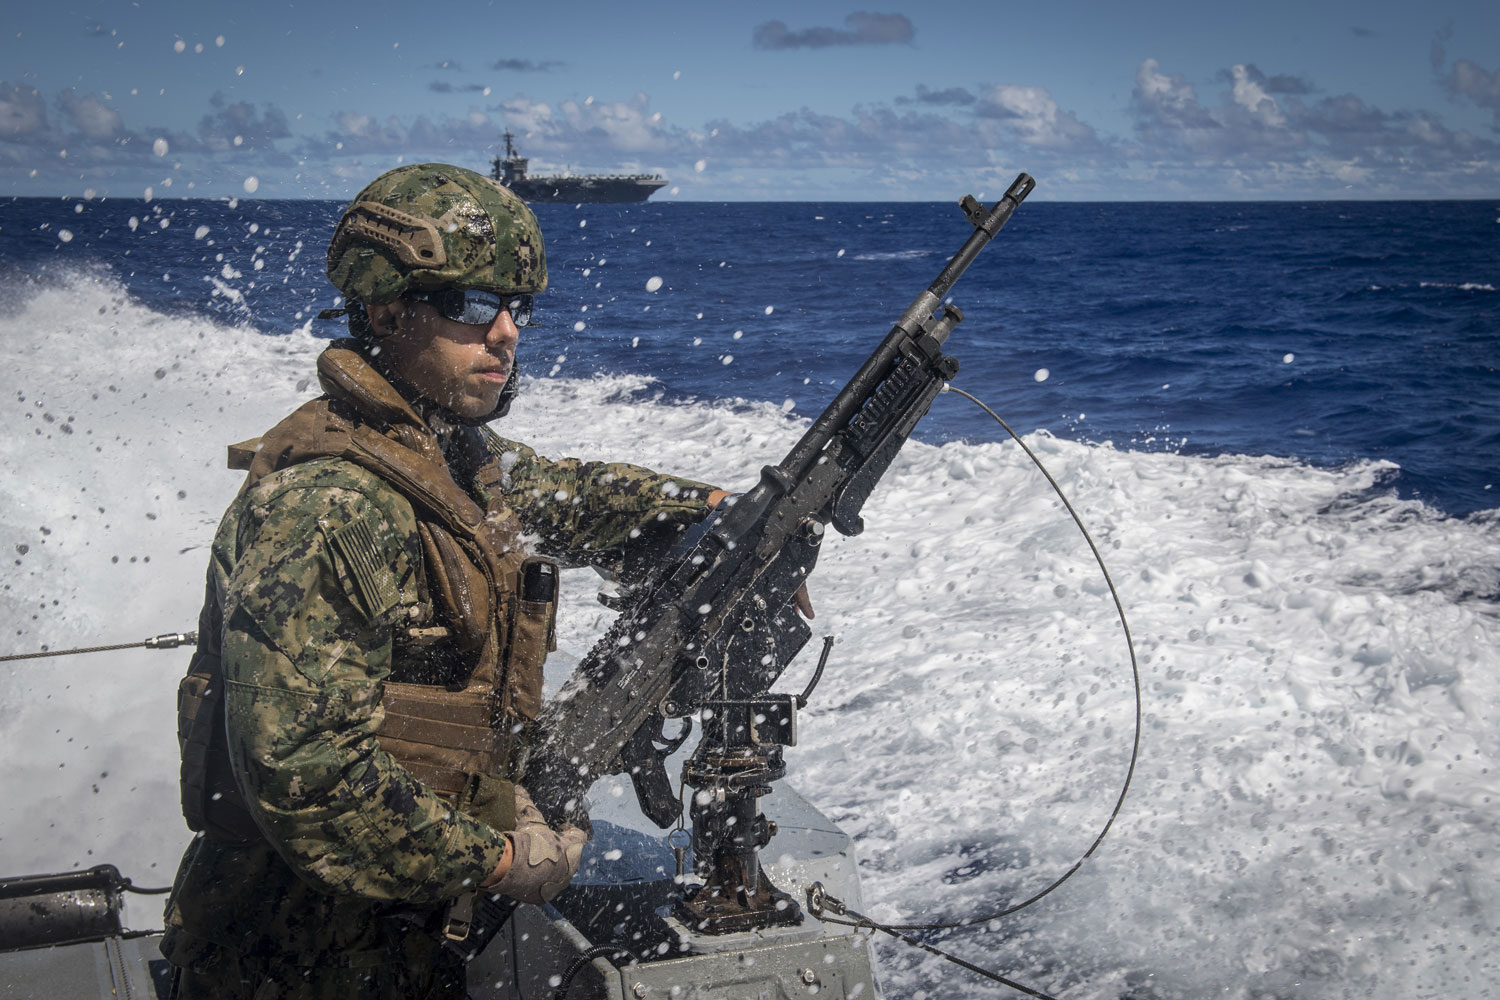 U.S. Navy Hospital Corpsman 2nd Class Jesse Smith, assigned to Coastal Riverine Squadron (CRS) 2, mans an M240G machine gun aboard a MK VI patrol boat while providing high value asset protection for the aircraft carrier USS Theodore Roosevelt (CVN 71) as it transits to Apra Harbor, Guam.